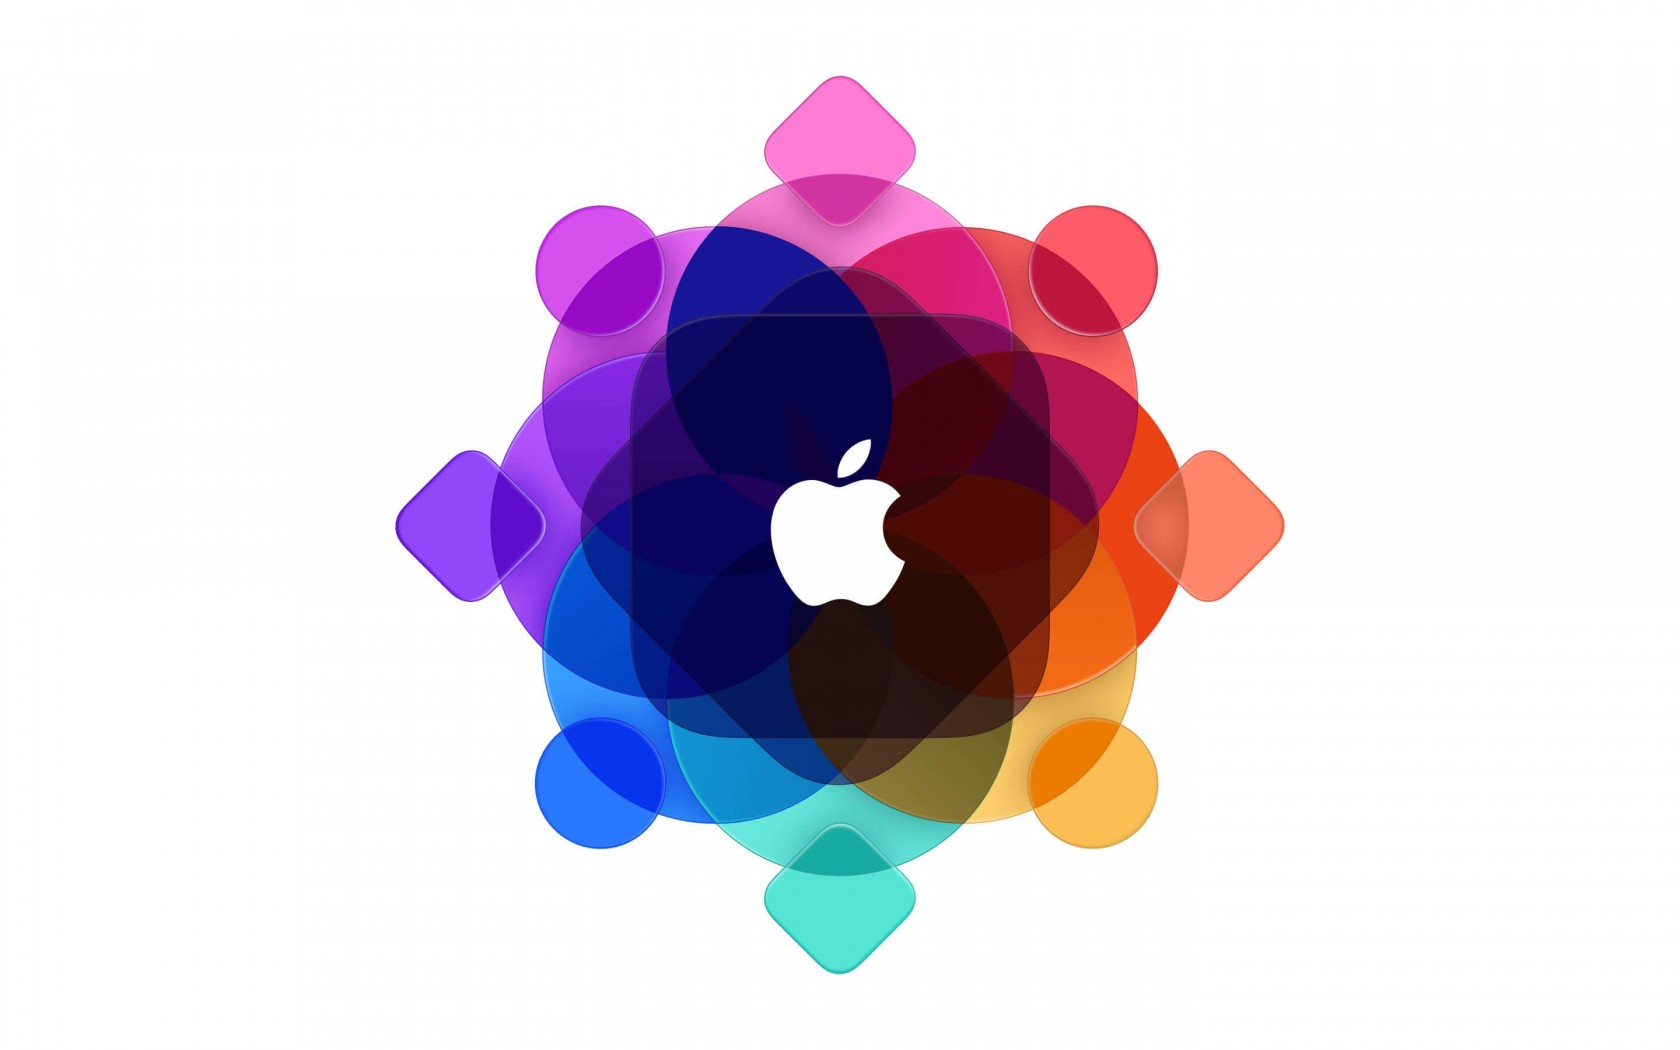 Apple WWDC 2015 Wallpaper for Desktop 1680x1050